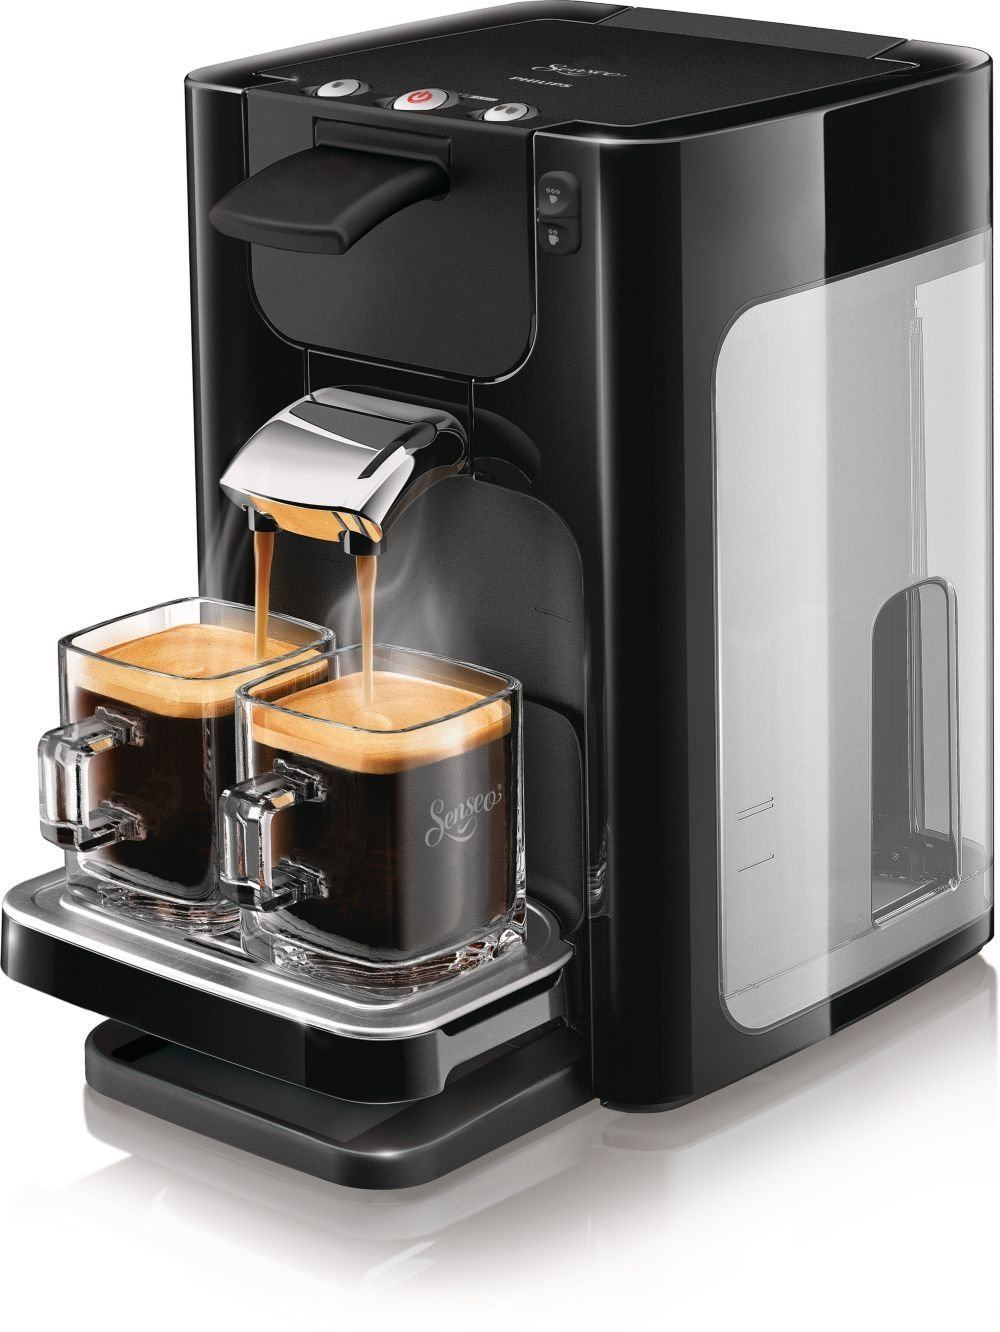 Cafetière Delonghi Darty Darty Machine Caf Awesome Machine A Cafe Tassimo Carrefour With